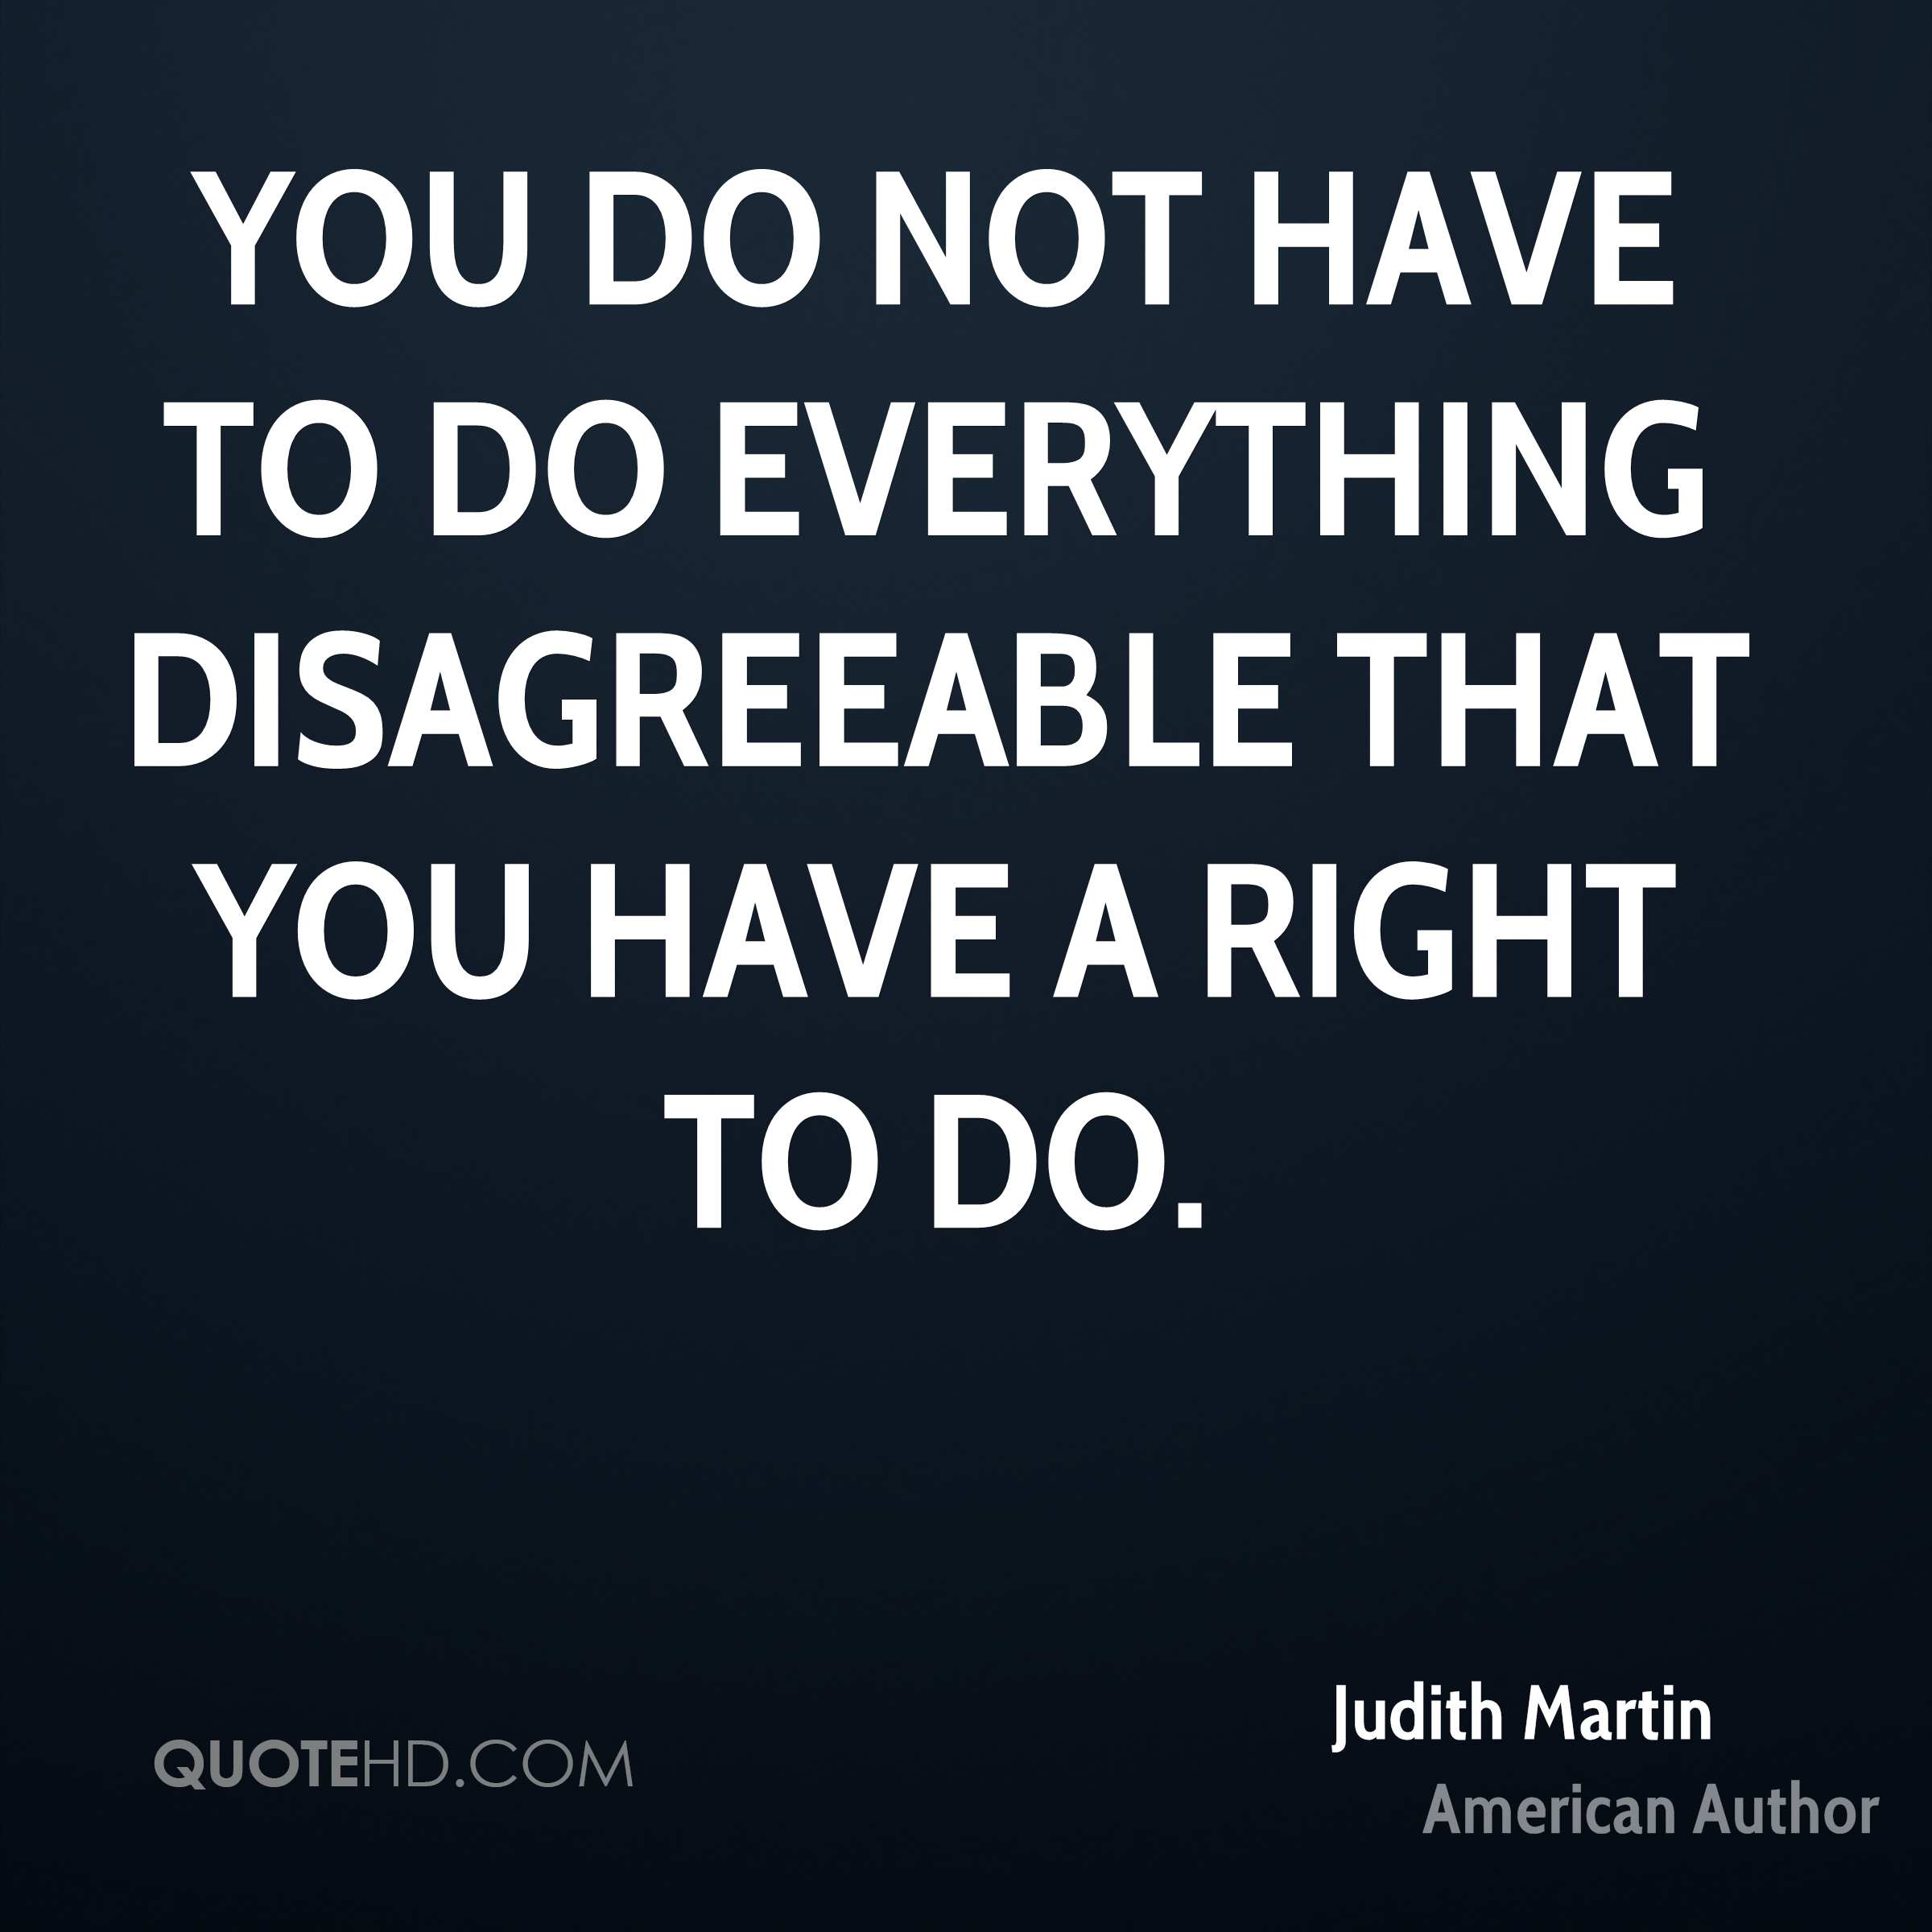 You do not have to do everything disagreeable that you have a right to do.